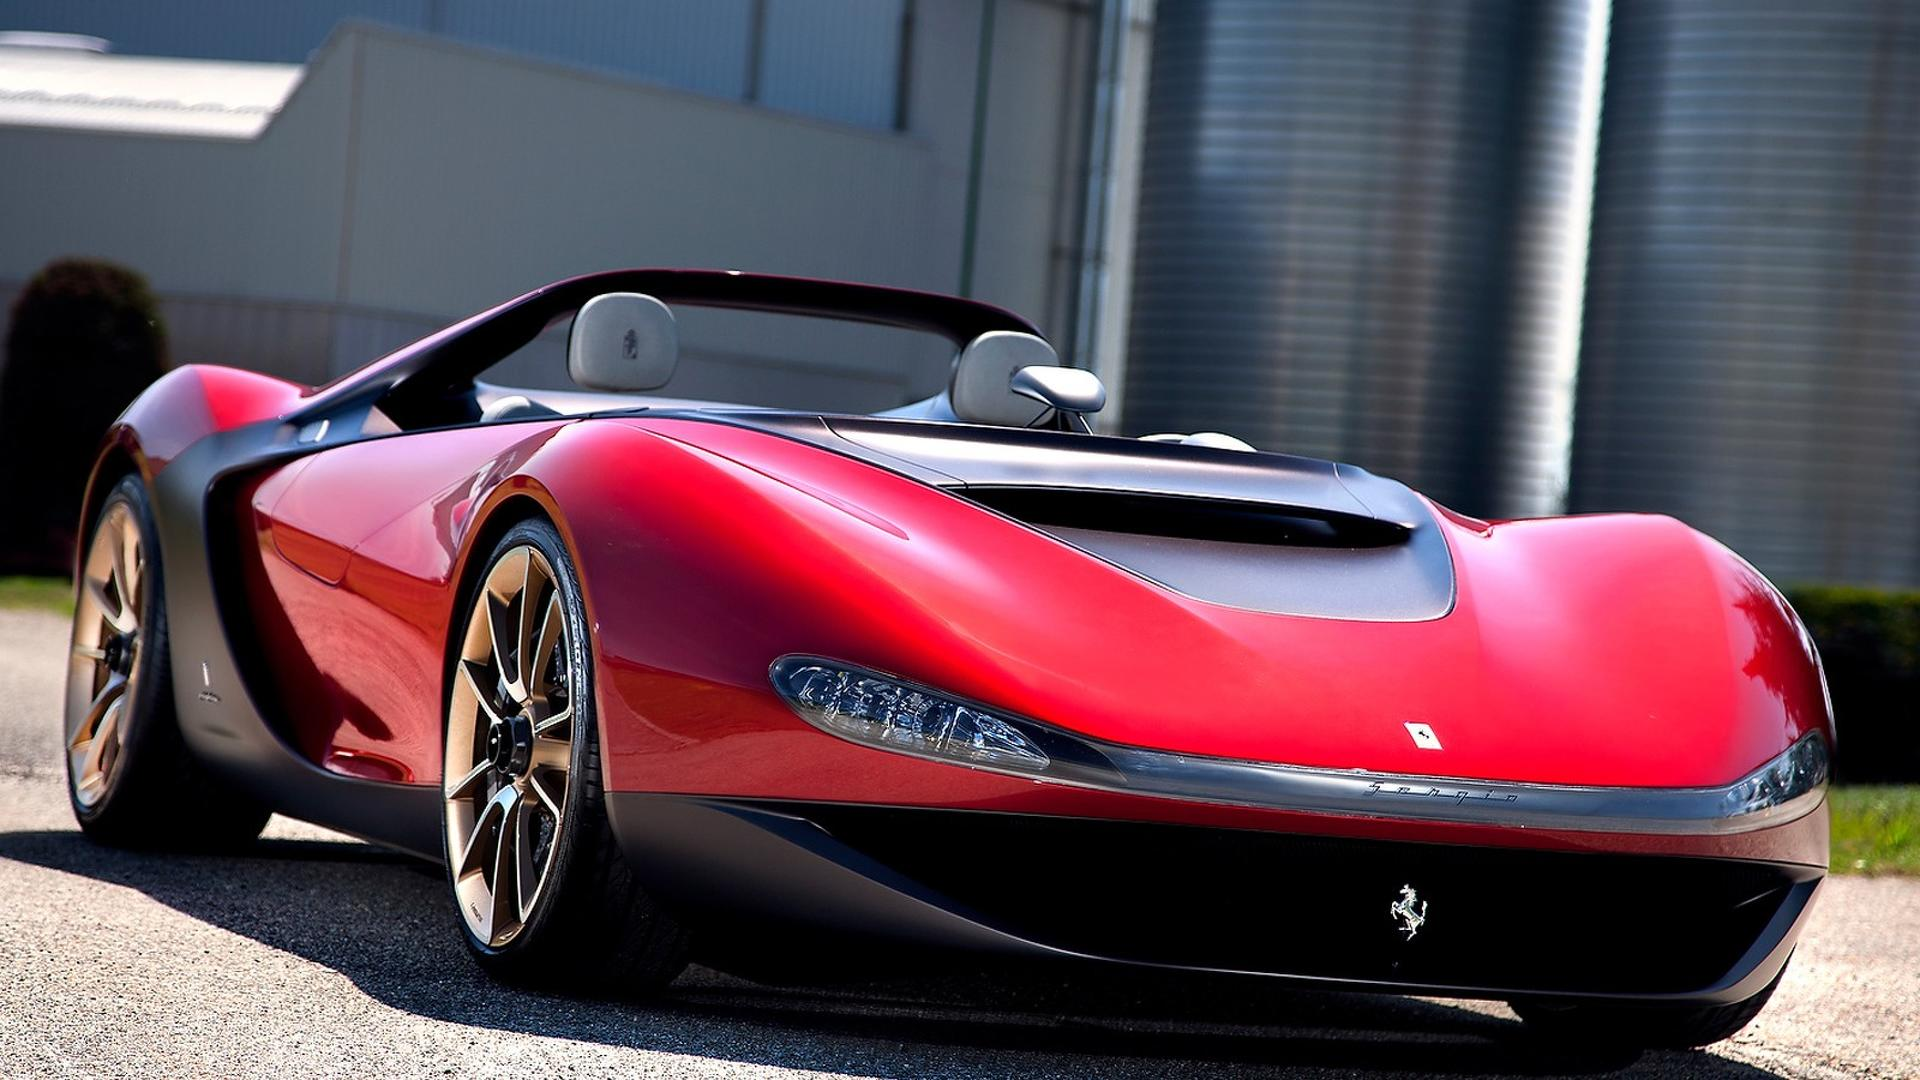 Ferrari Sergio is one of the most expensive cars today